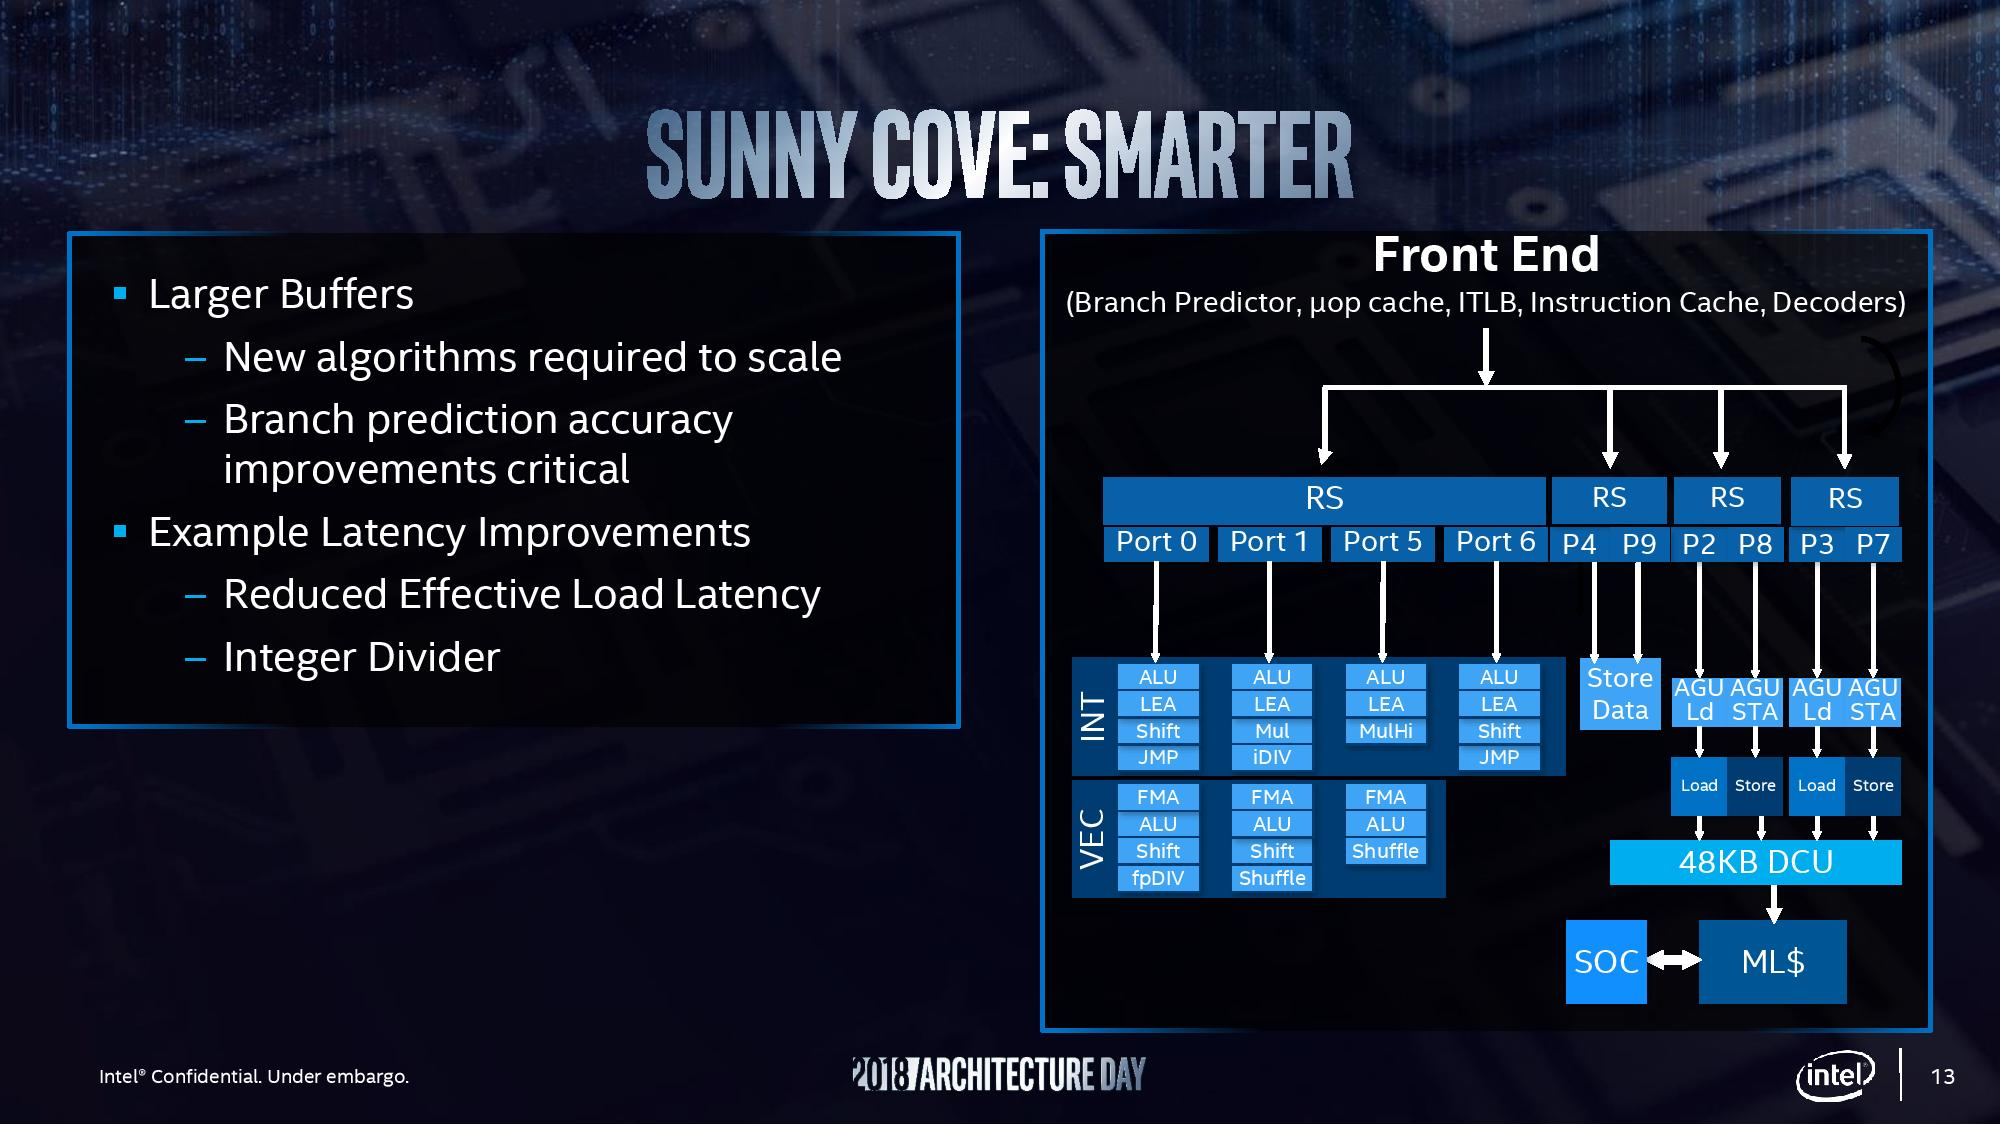 Intel's Sunny Cove is its next-generation gaming CPU architecture